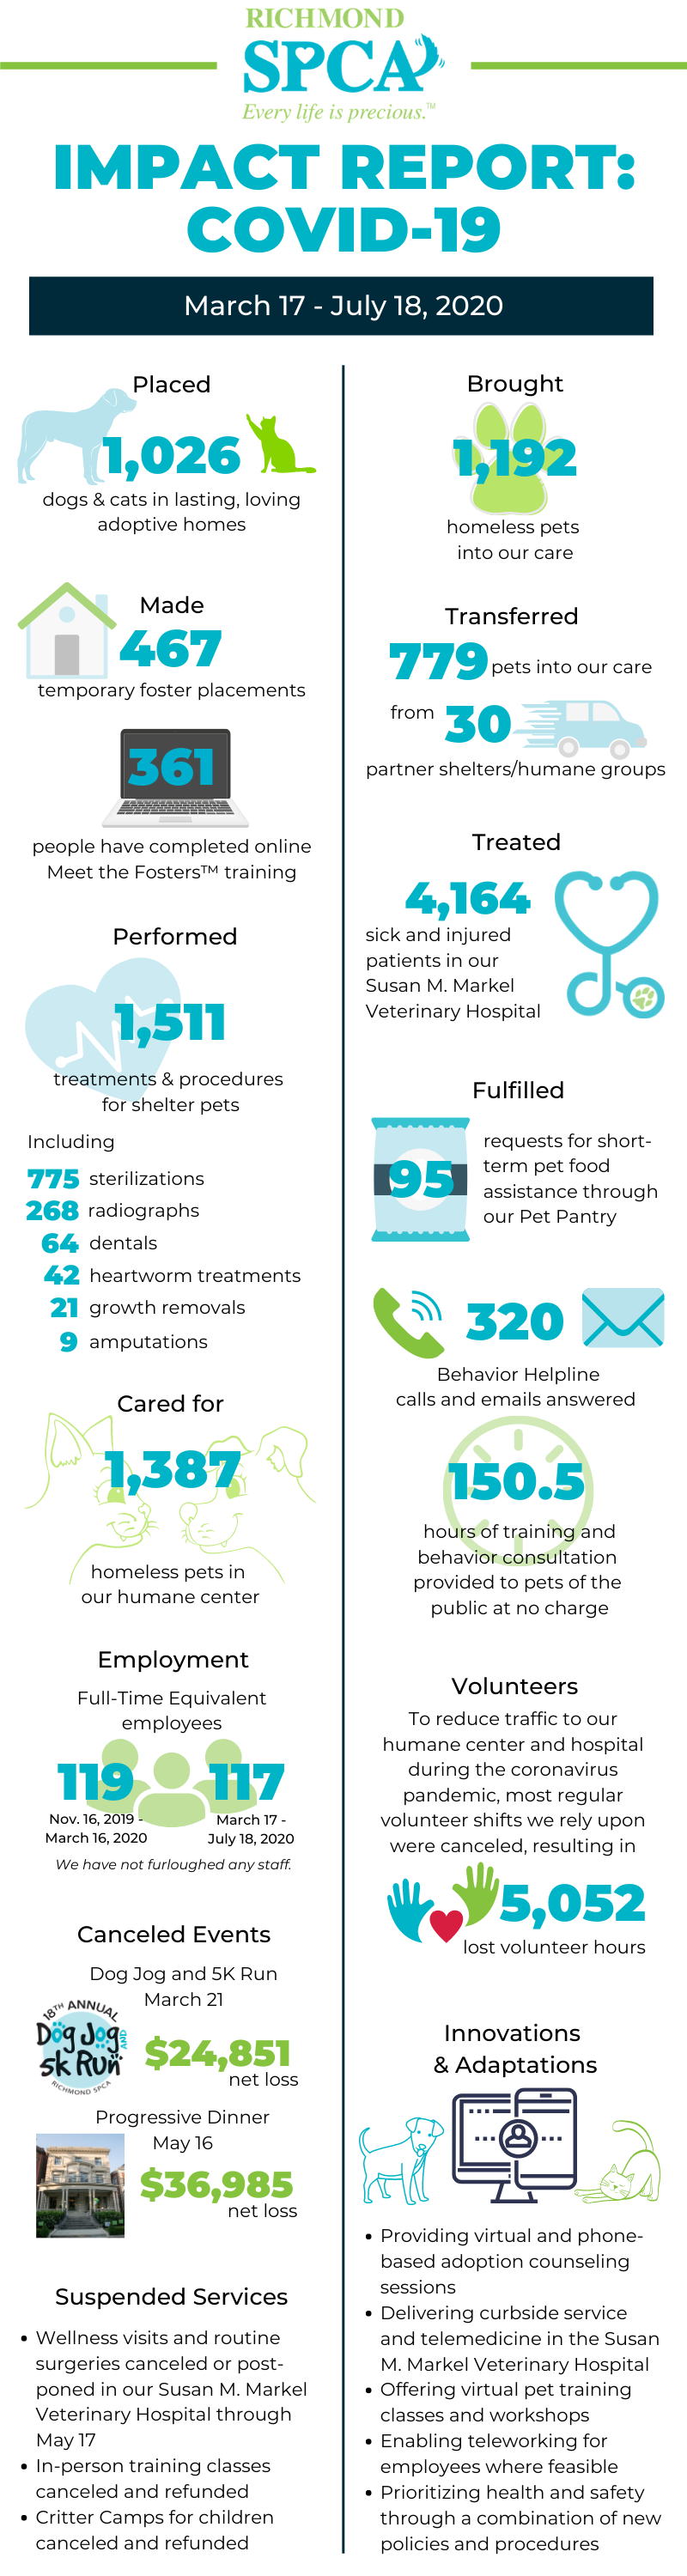 Infographic depicting the impact of the Richmond SPCA'S work from March 17 through July 18, 2020